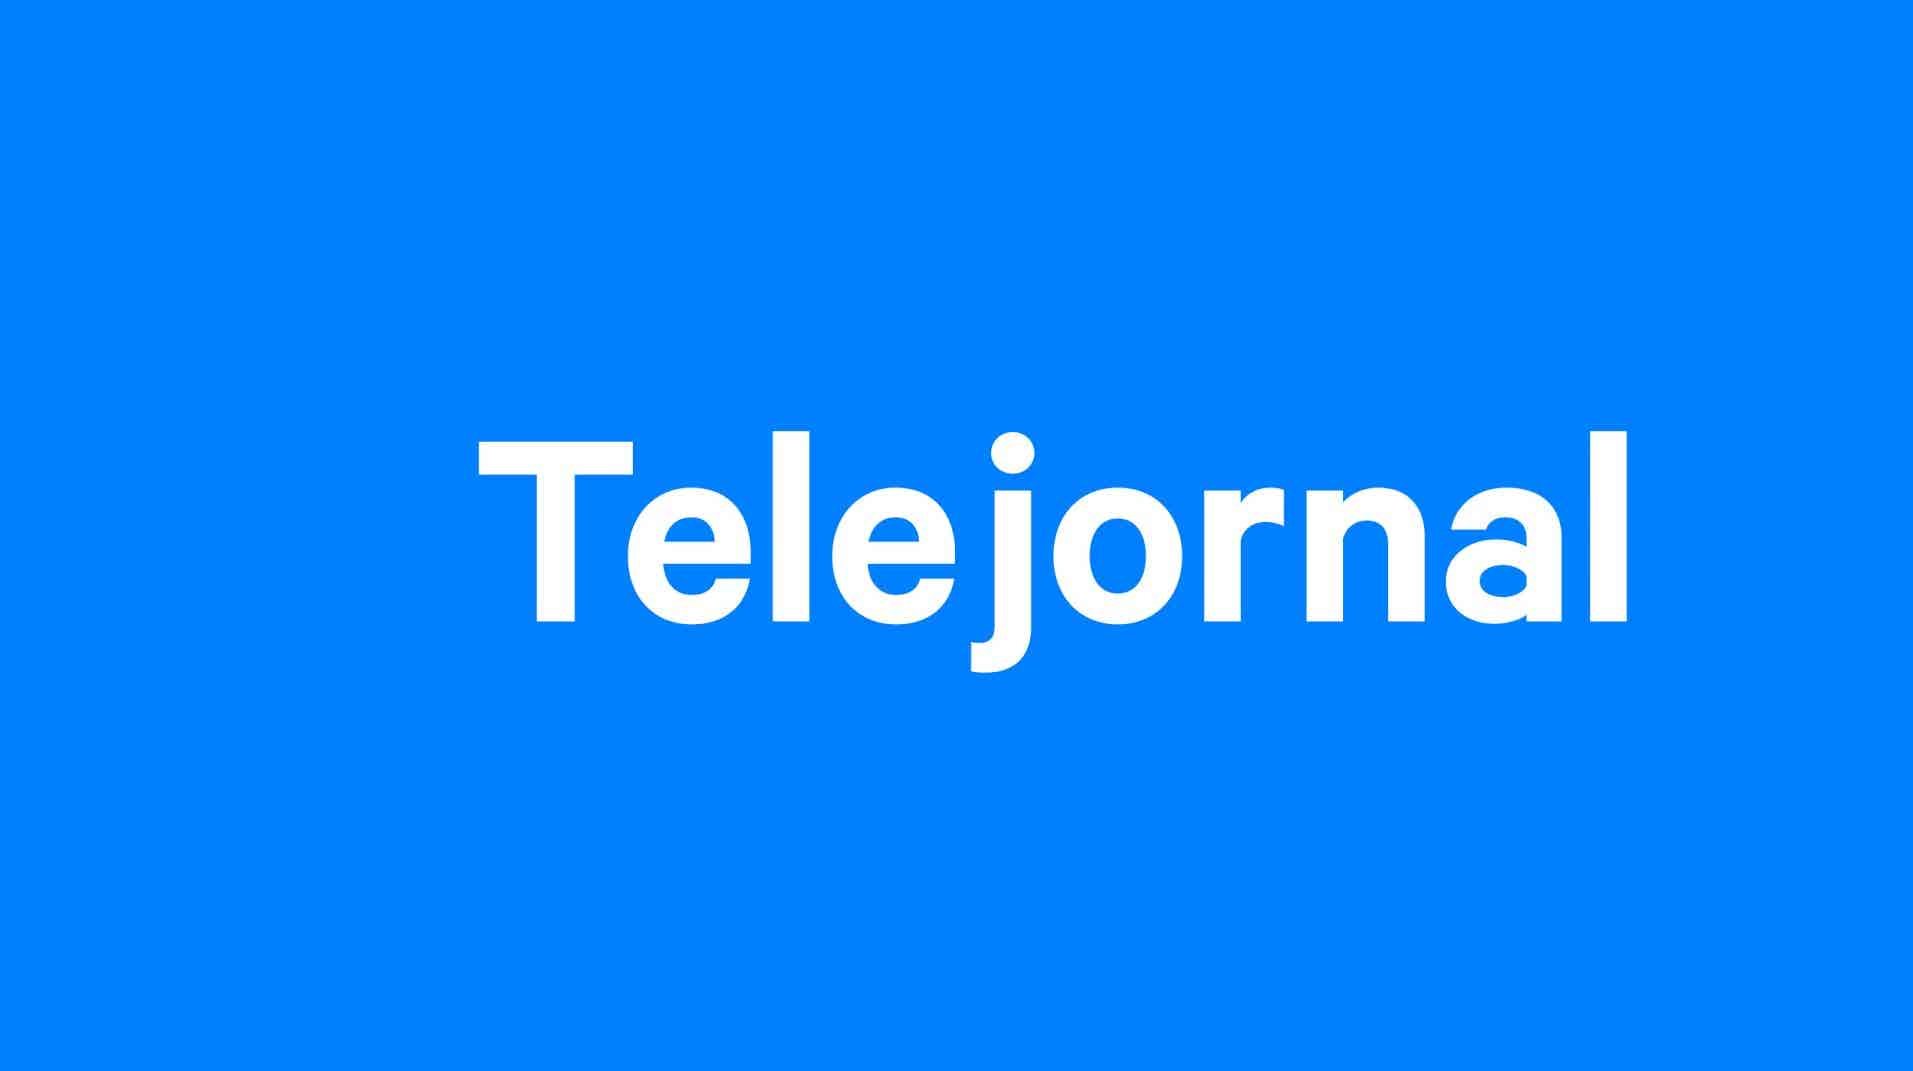 Telejornal 2017 - Temporada